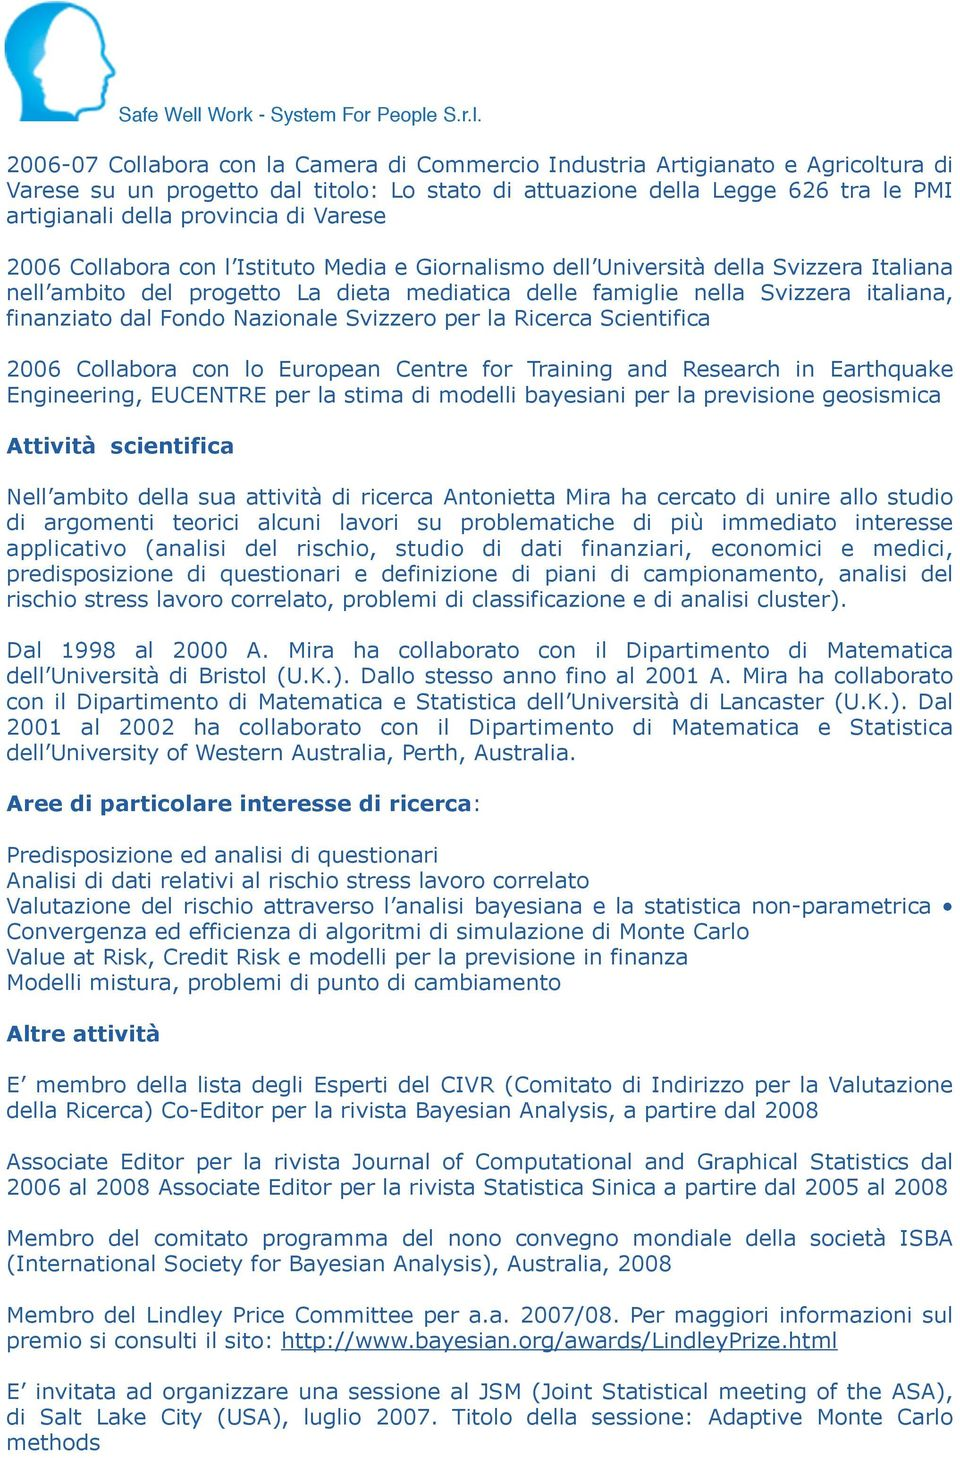 Fondo Nazionale Svizzero per la Ricerca Scientifica 2006 Collabora con lo European Centre for Training and Research in Earthquake Engineering, EUCENTRE per la stima di modelli bayesiani per la